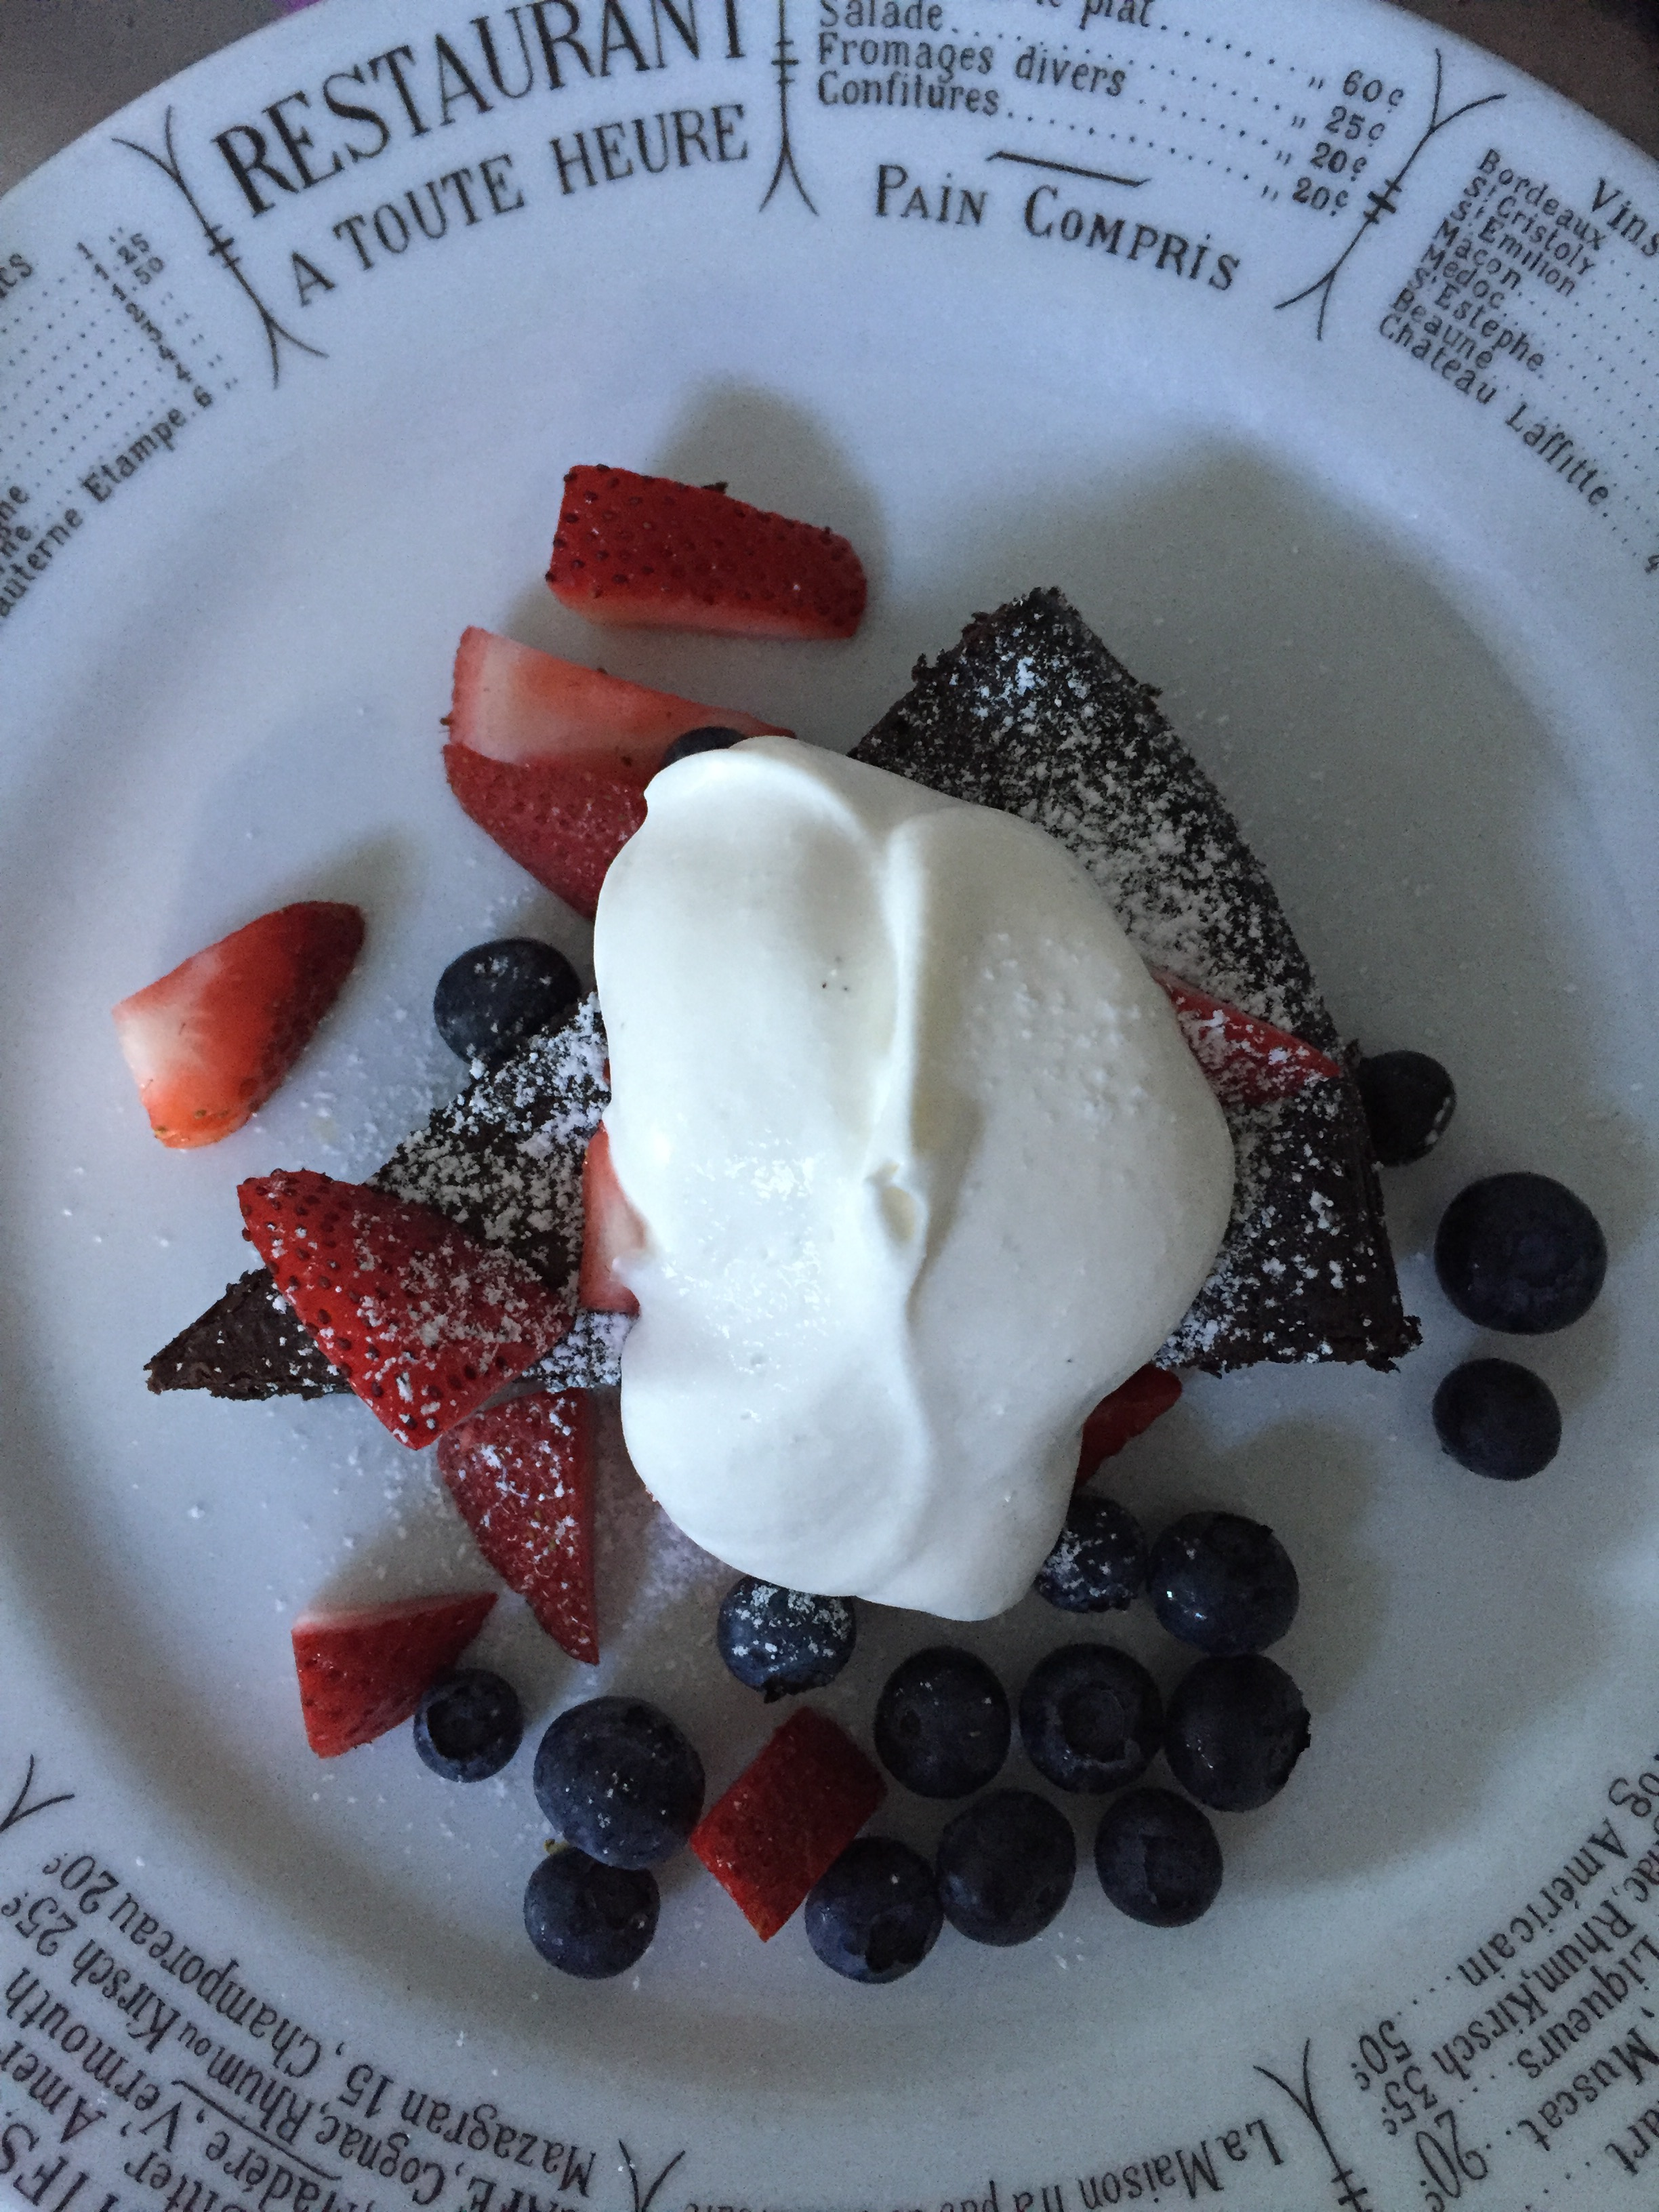 flourless chocolate cake served with whipped cream and fresh berries